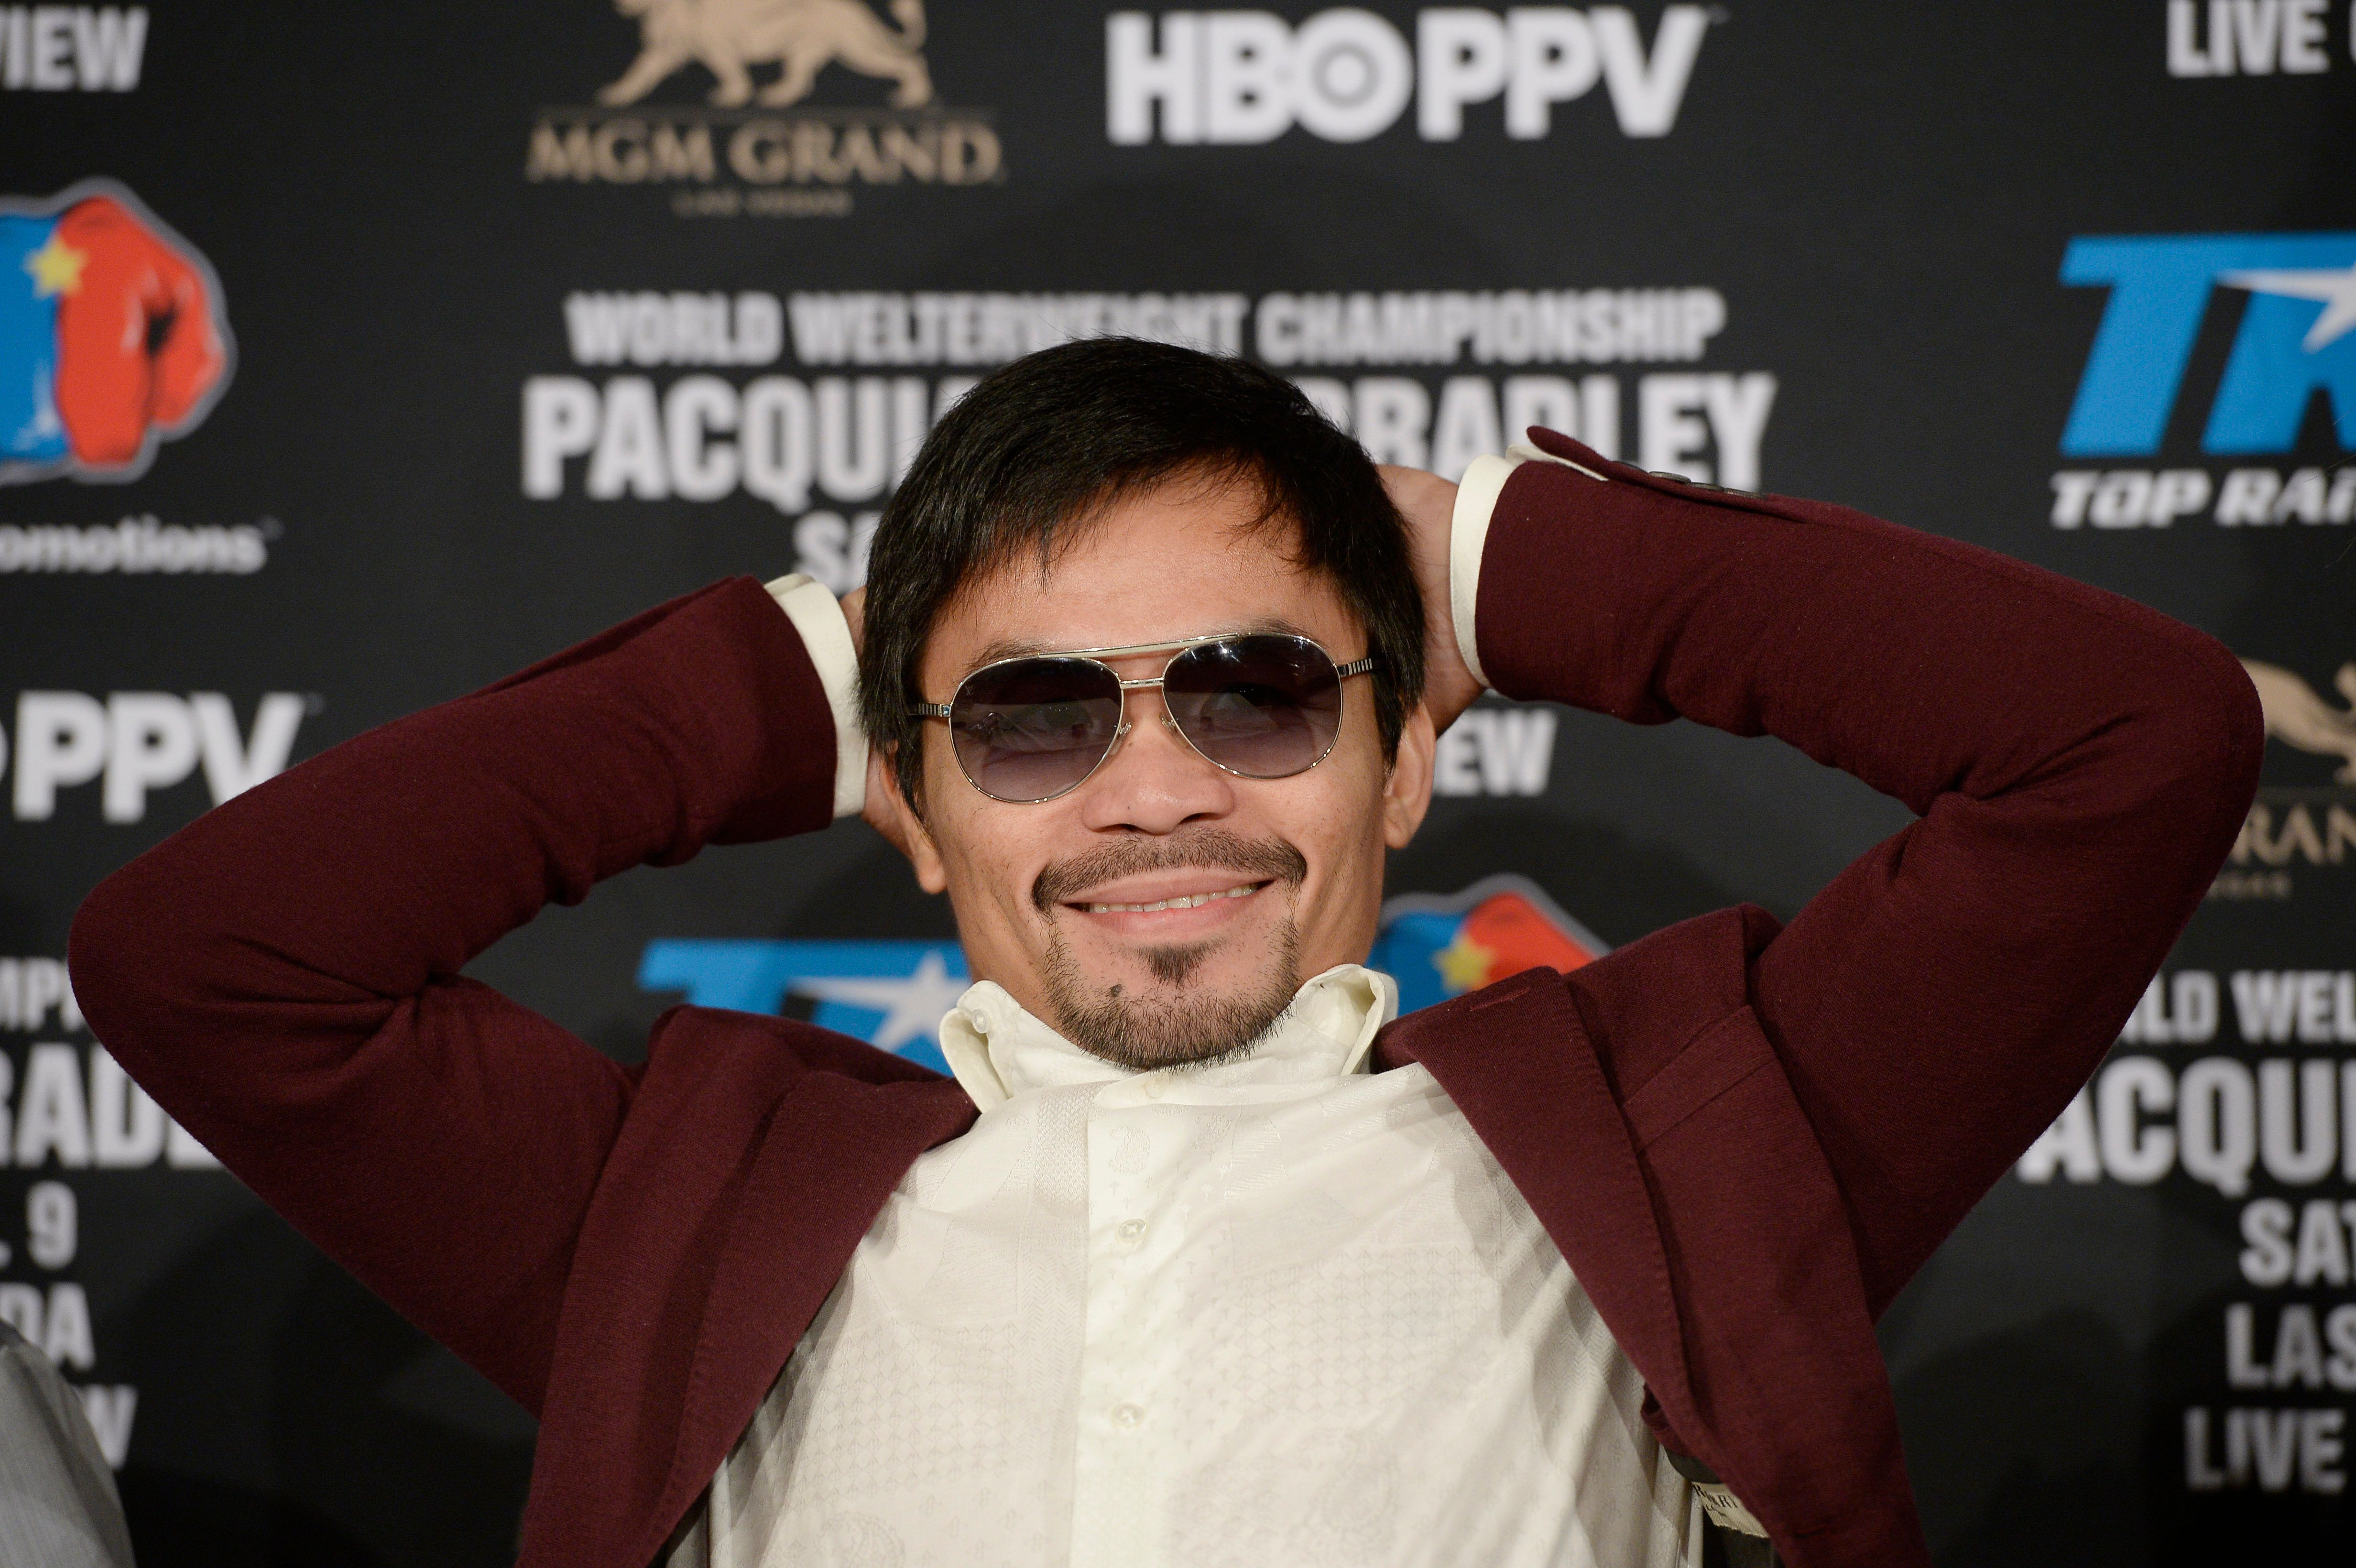 BEVERLY HILLS, CA - JANUARY 19: Manny Pacquiao smiles during a news conference where he announce his upcoming world welterweight championship bout against Timothy Bradley at the Beverly Hills Hotel January 19, 2016 in Beverly Hills, California. The fight will take place at the MGM Grand casino in Las Vegas, Nevada, on April 9. (Photo by Kevork Djansezian/Getty Images)